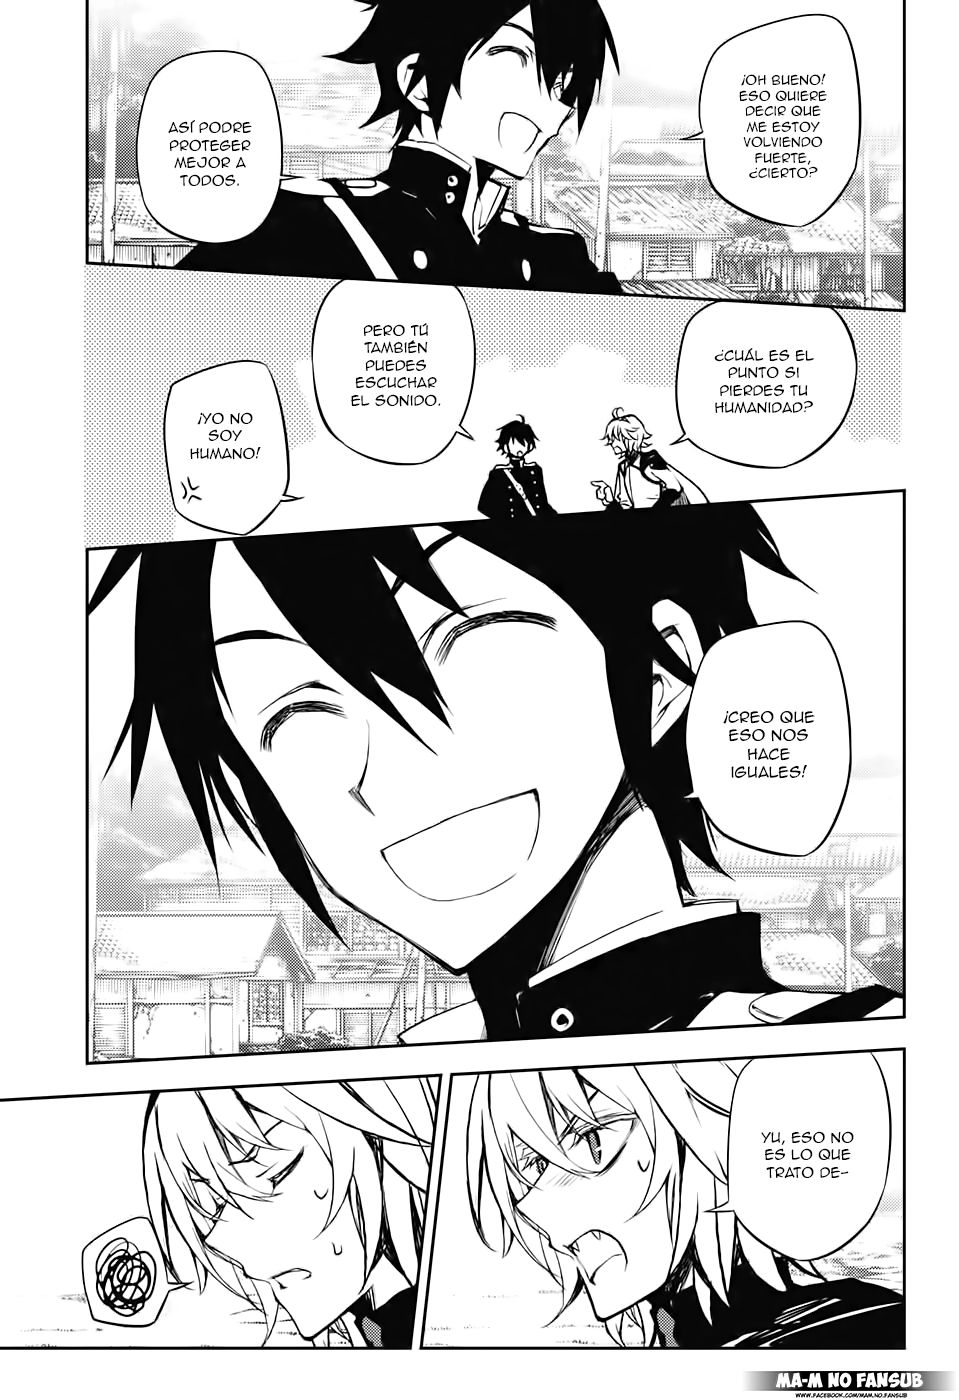 http://c5.ninemanga.com/es_manga/49/3057/454384/618f240928e74ae23216418c3d34c3ed.jpg Page 16